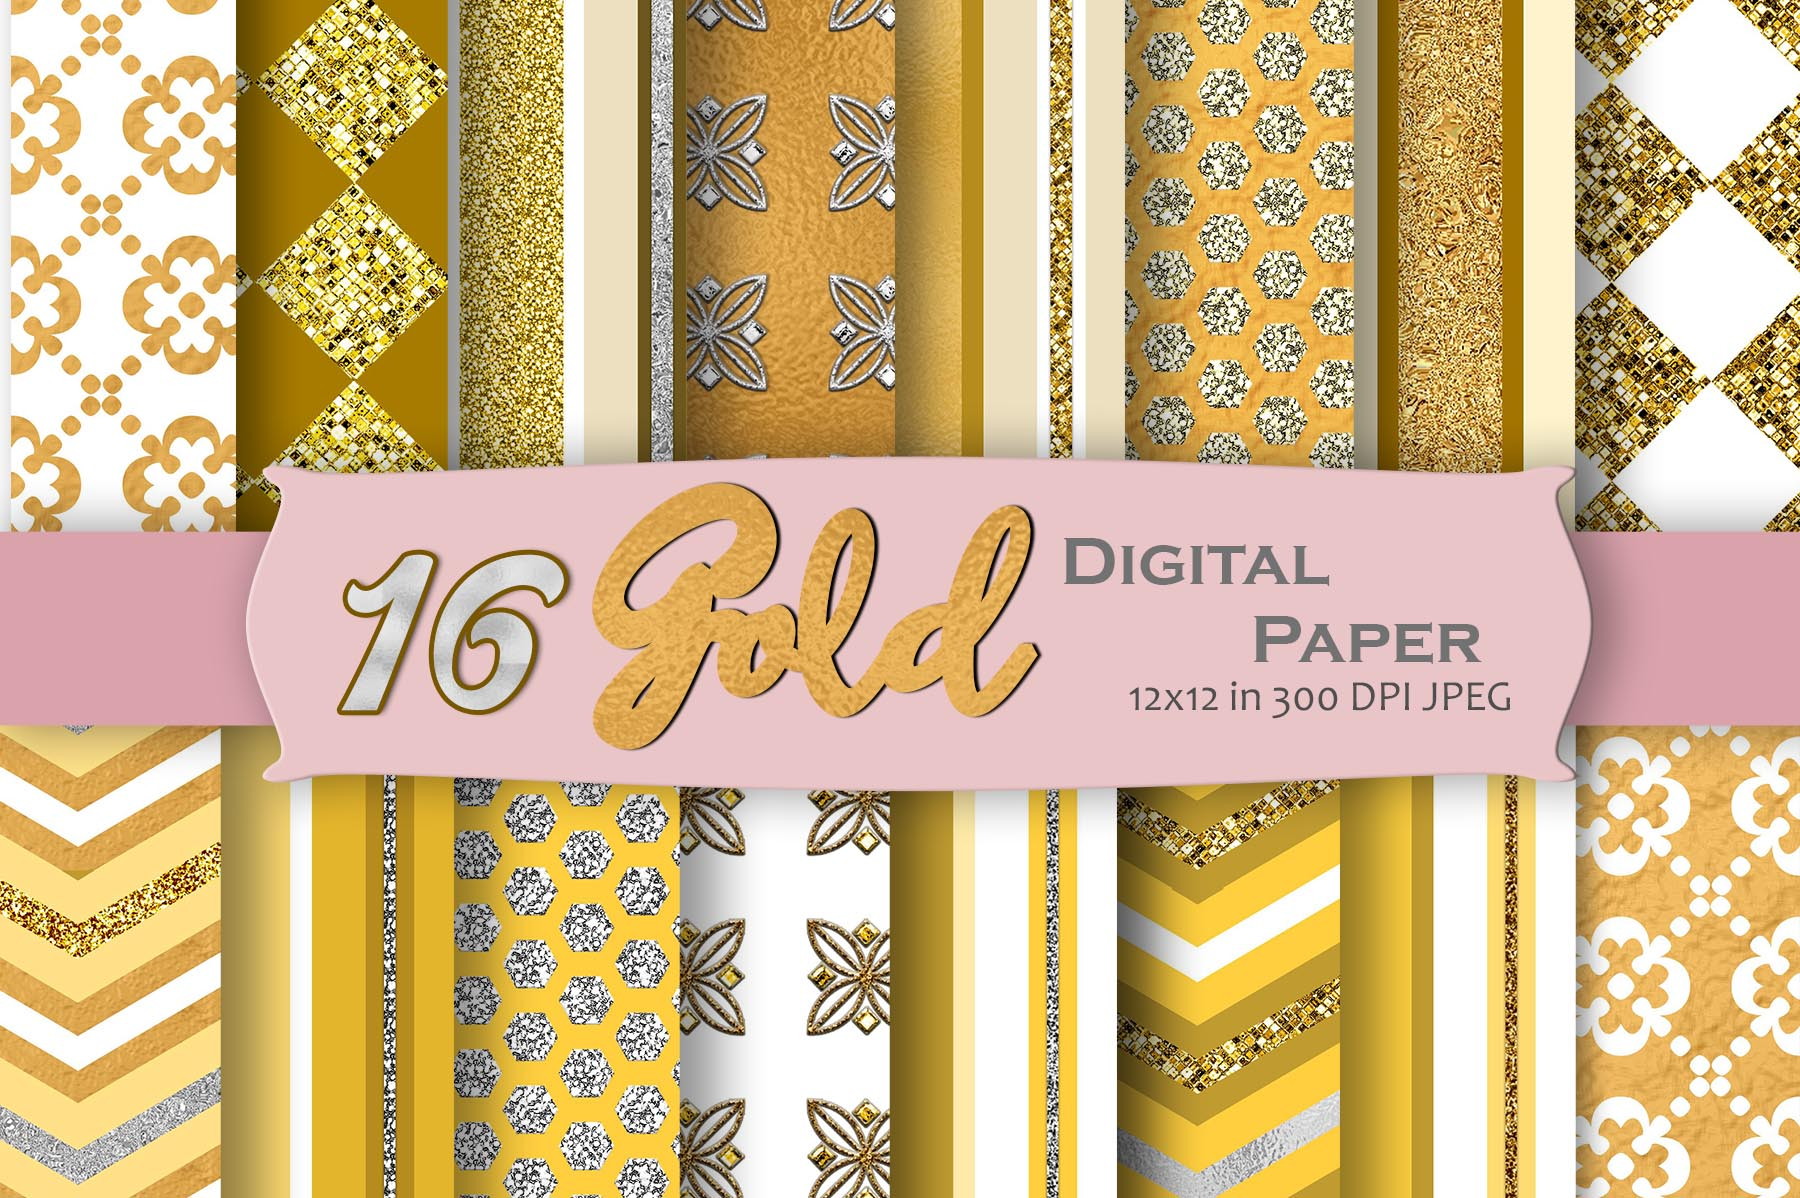 Download Free Gold Geometric Digital Paper Pack Graphic By Mrn Digishop for Cricut Explore, Silhouette and other cutting machines.